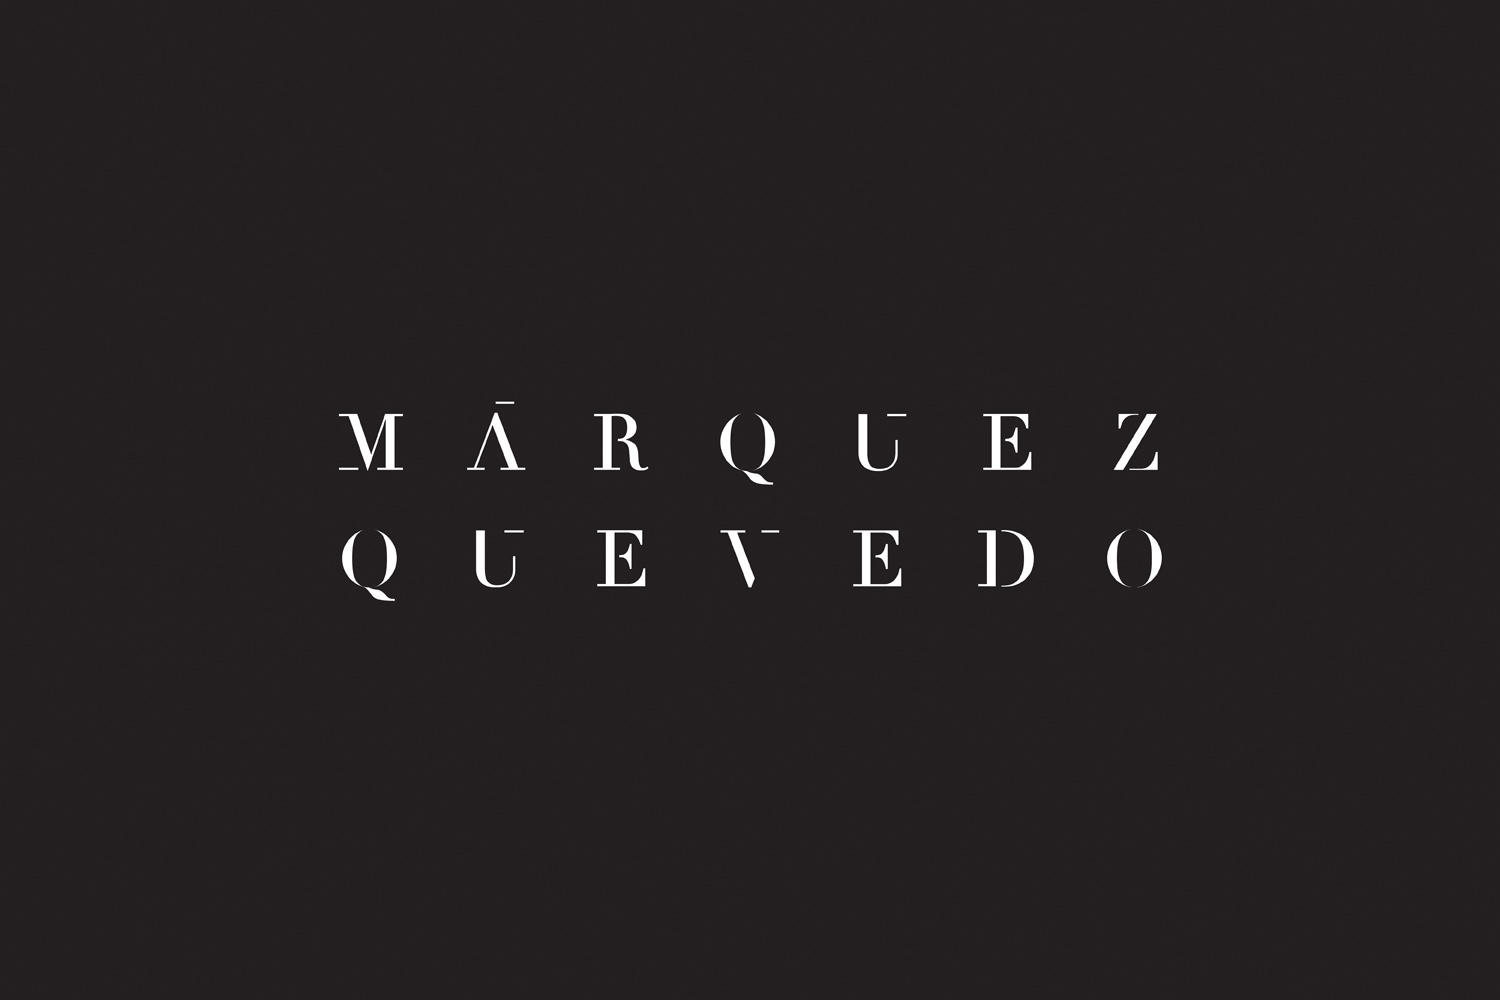 Logotype for Mexican architectural studio Marquez Quevedo by La Tortillería